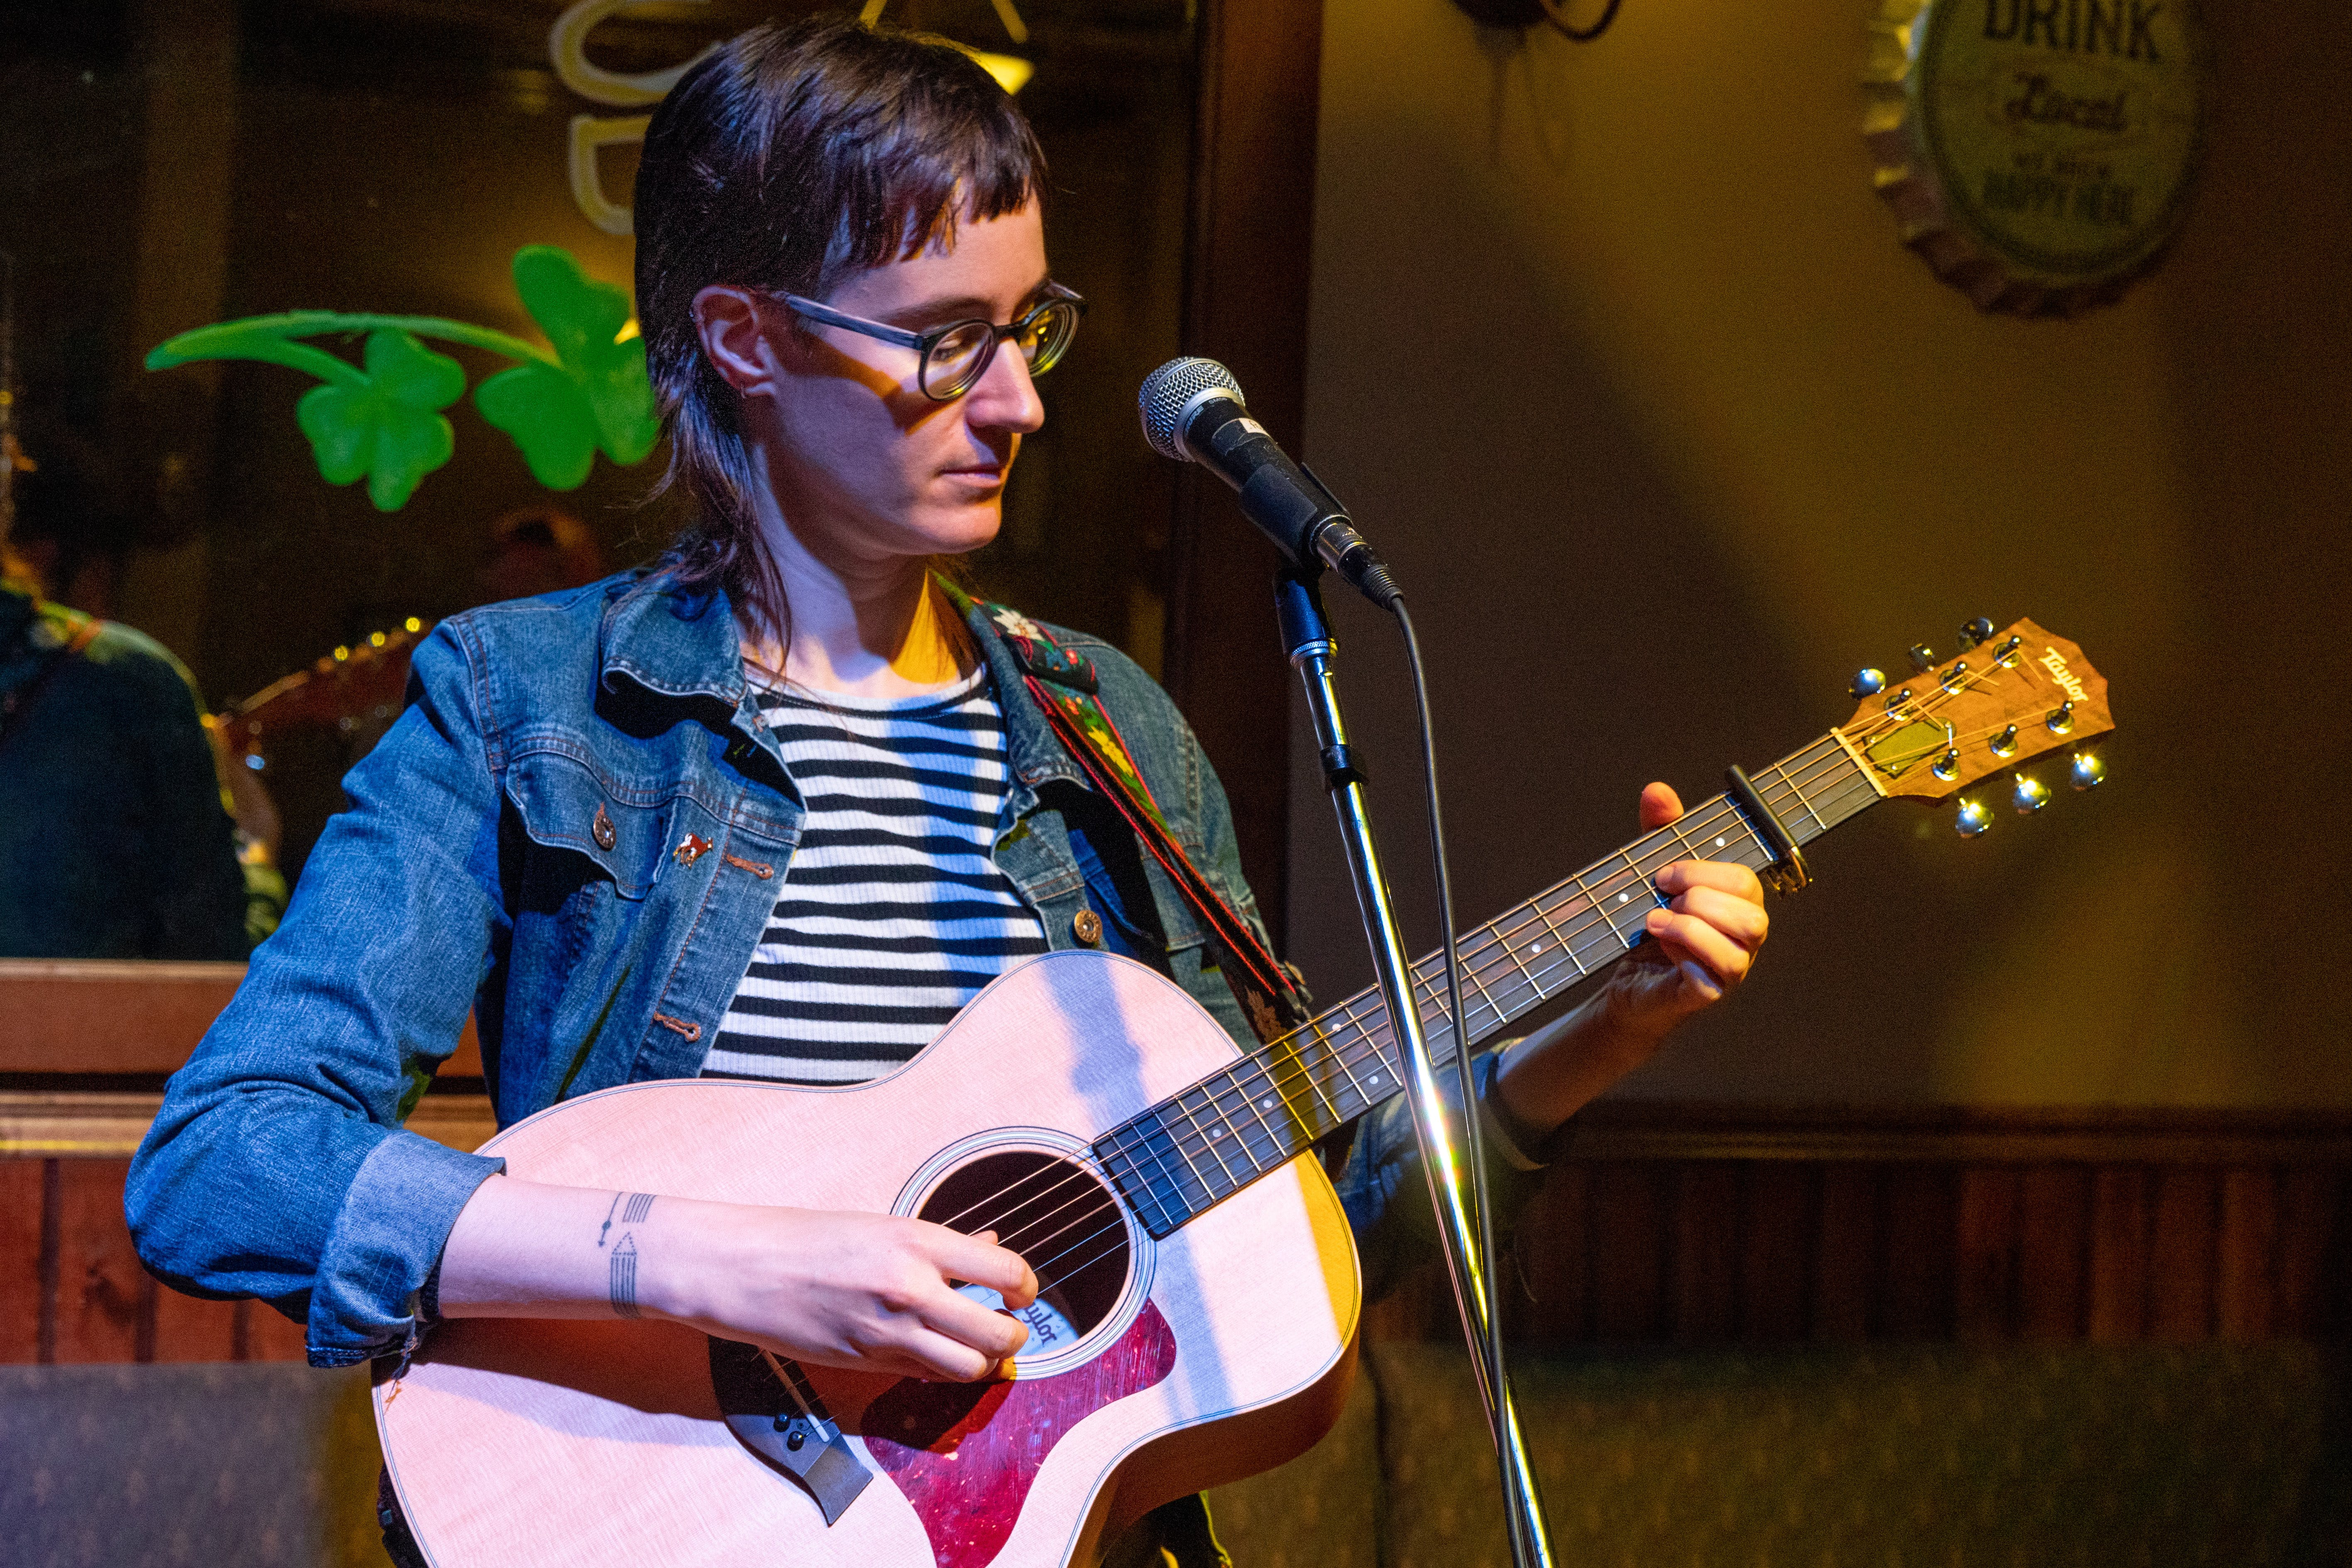 Rebecca Fairless hosted an open mic before COVID-19 and has since pivoted to playing online, which she says has fostered a different, yet cool, form of connection between performers and their audience.